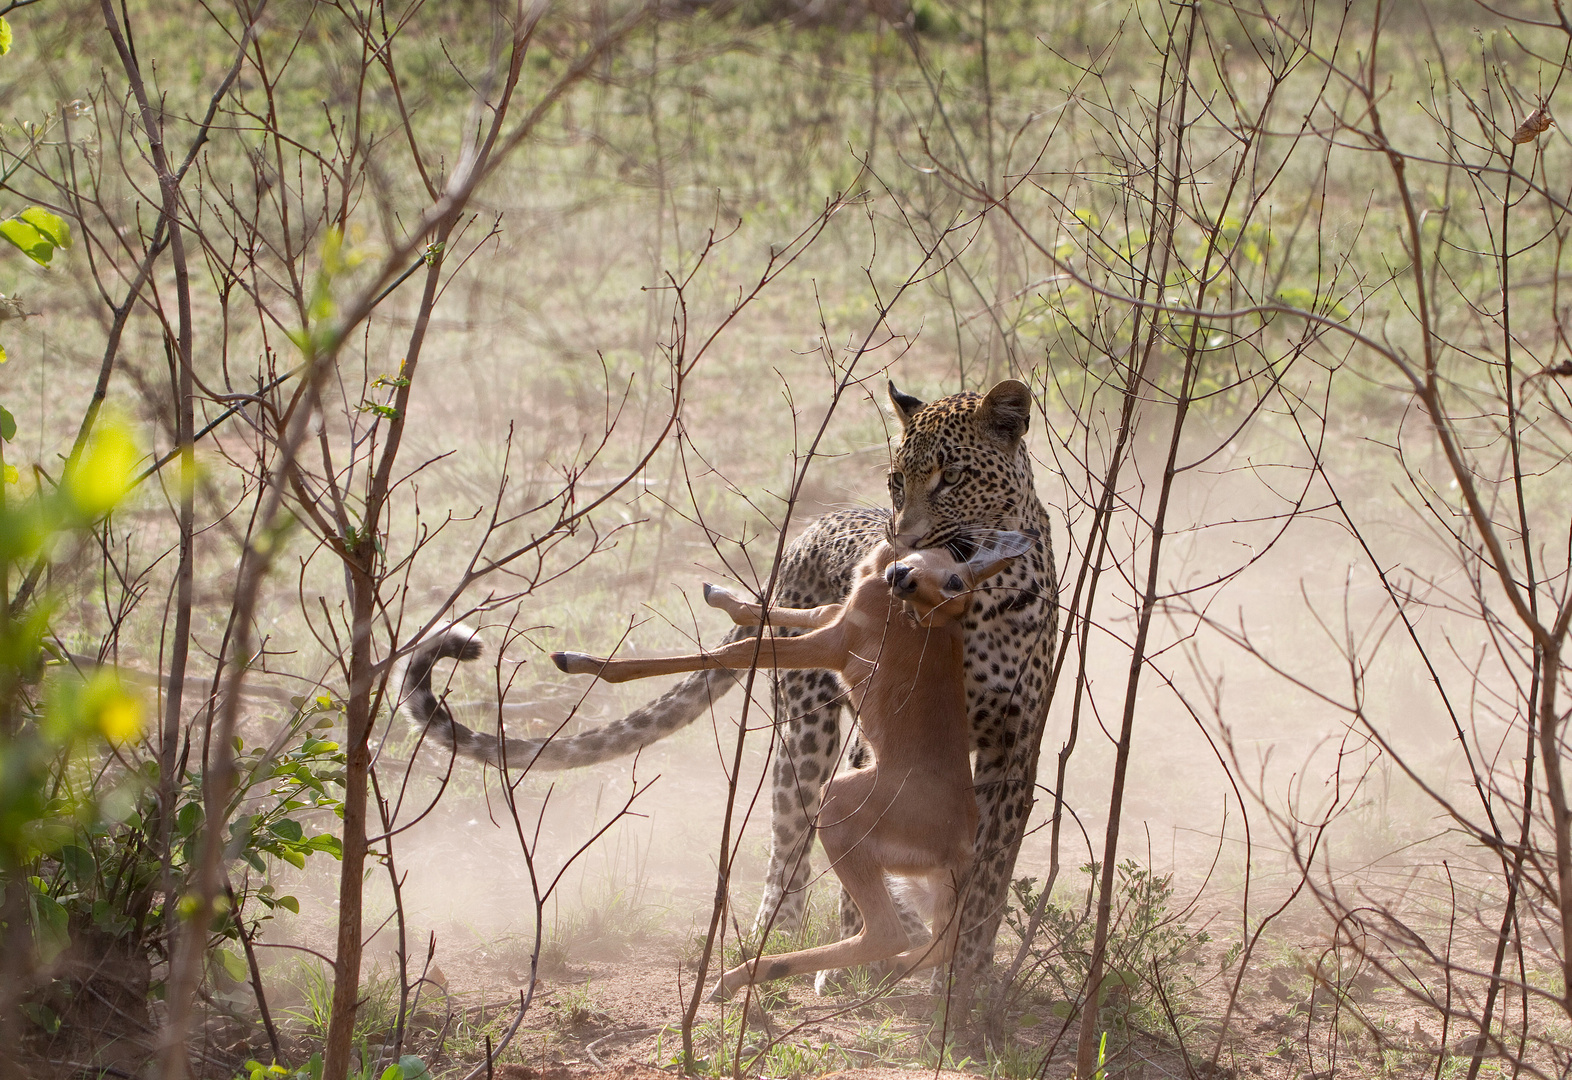 Leopard with impala